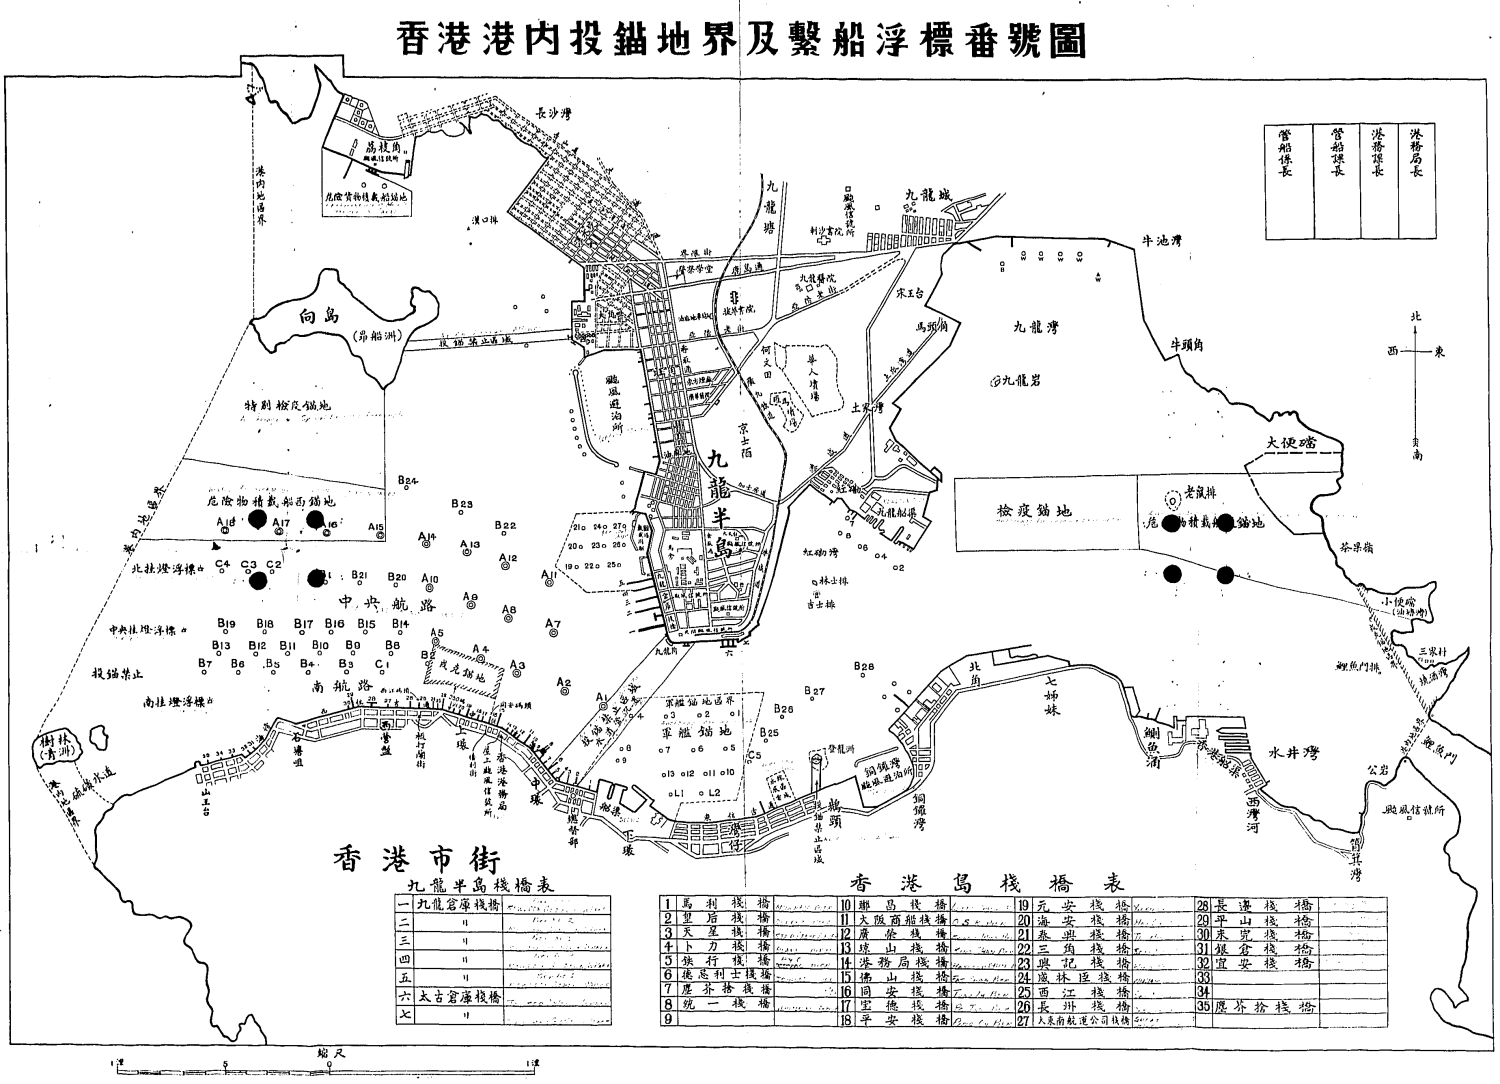 Cosmopolitan Docks during Jap Occupation 1942-1945